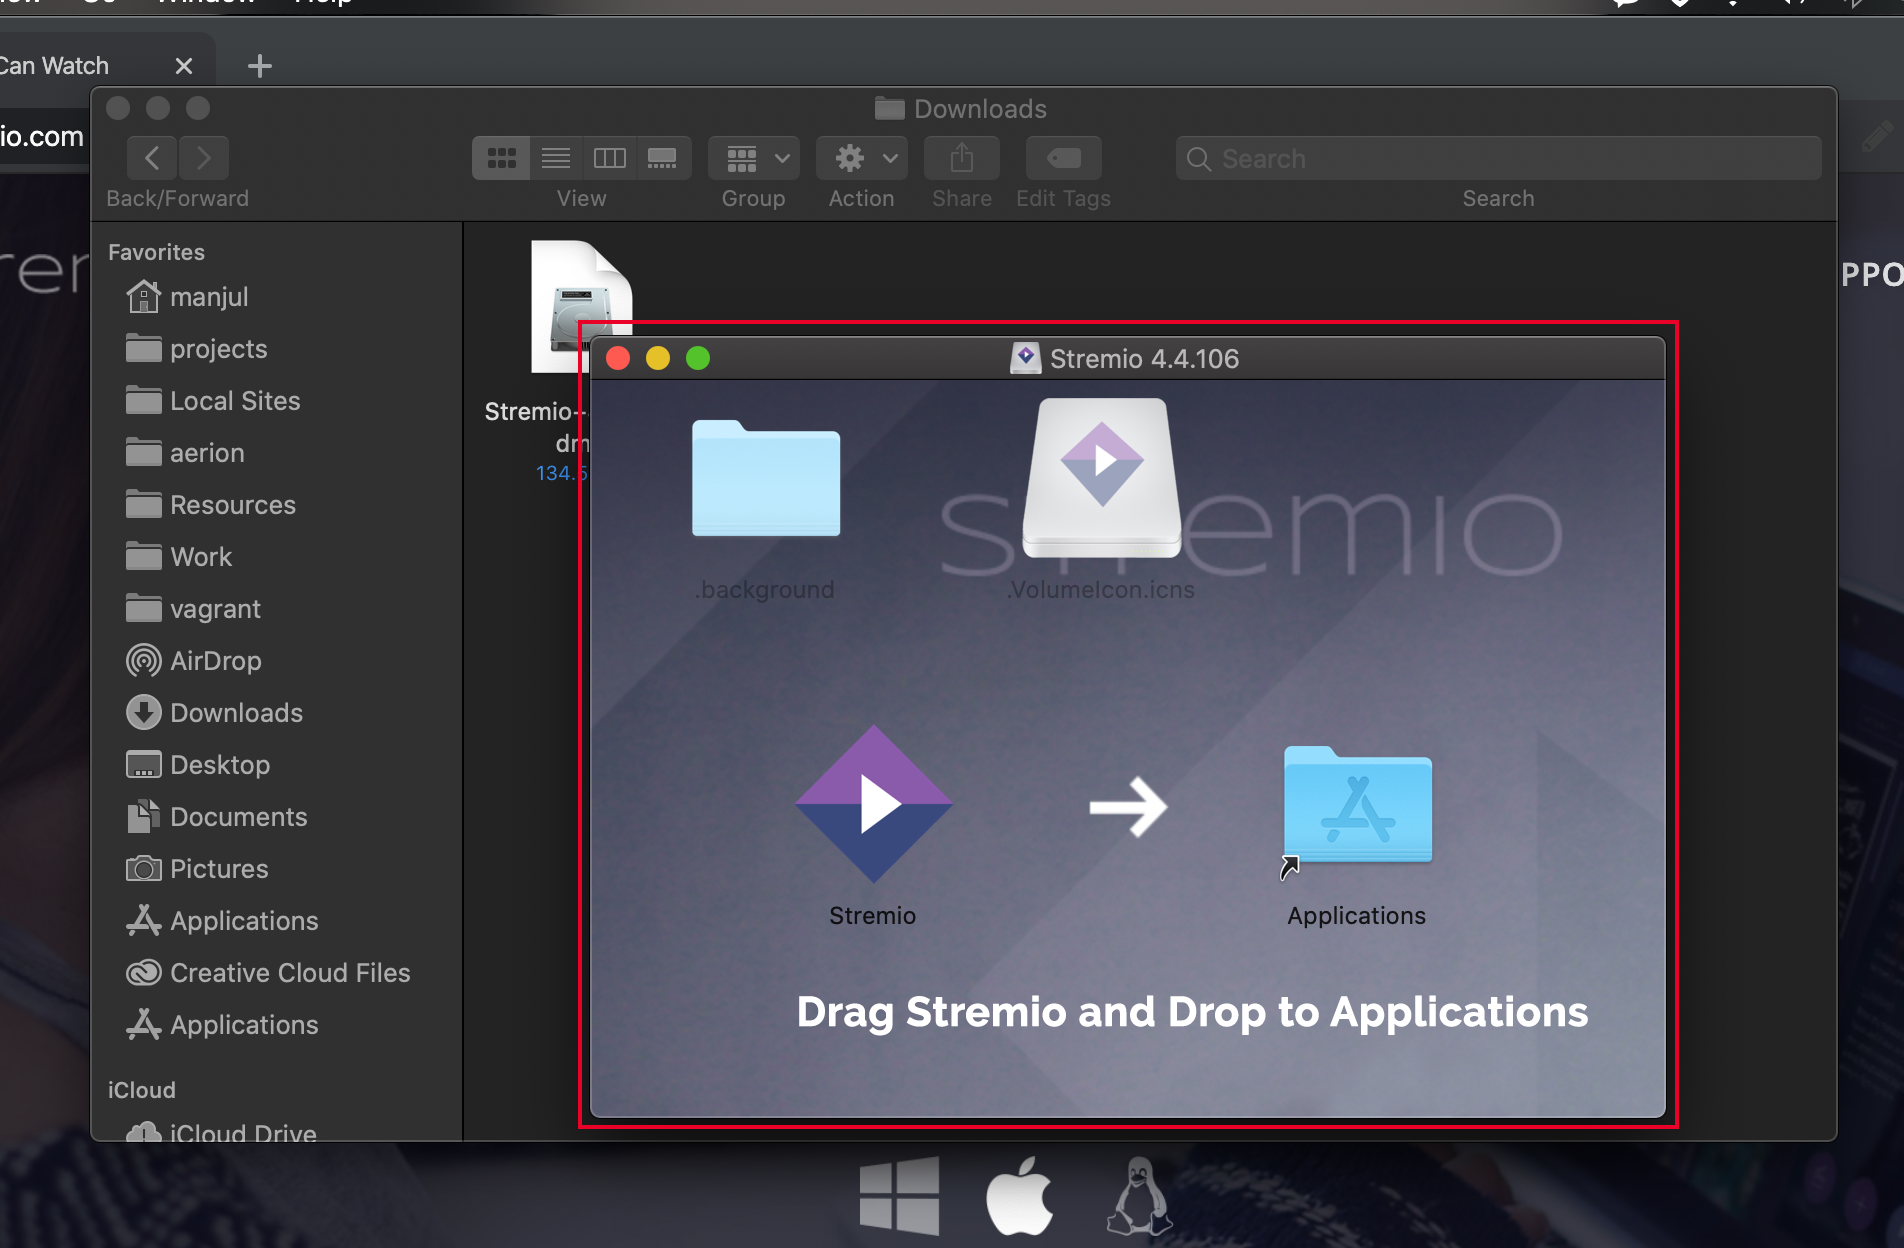 How to install Stremio on macOS 4